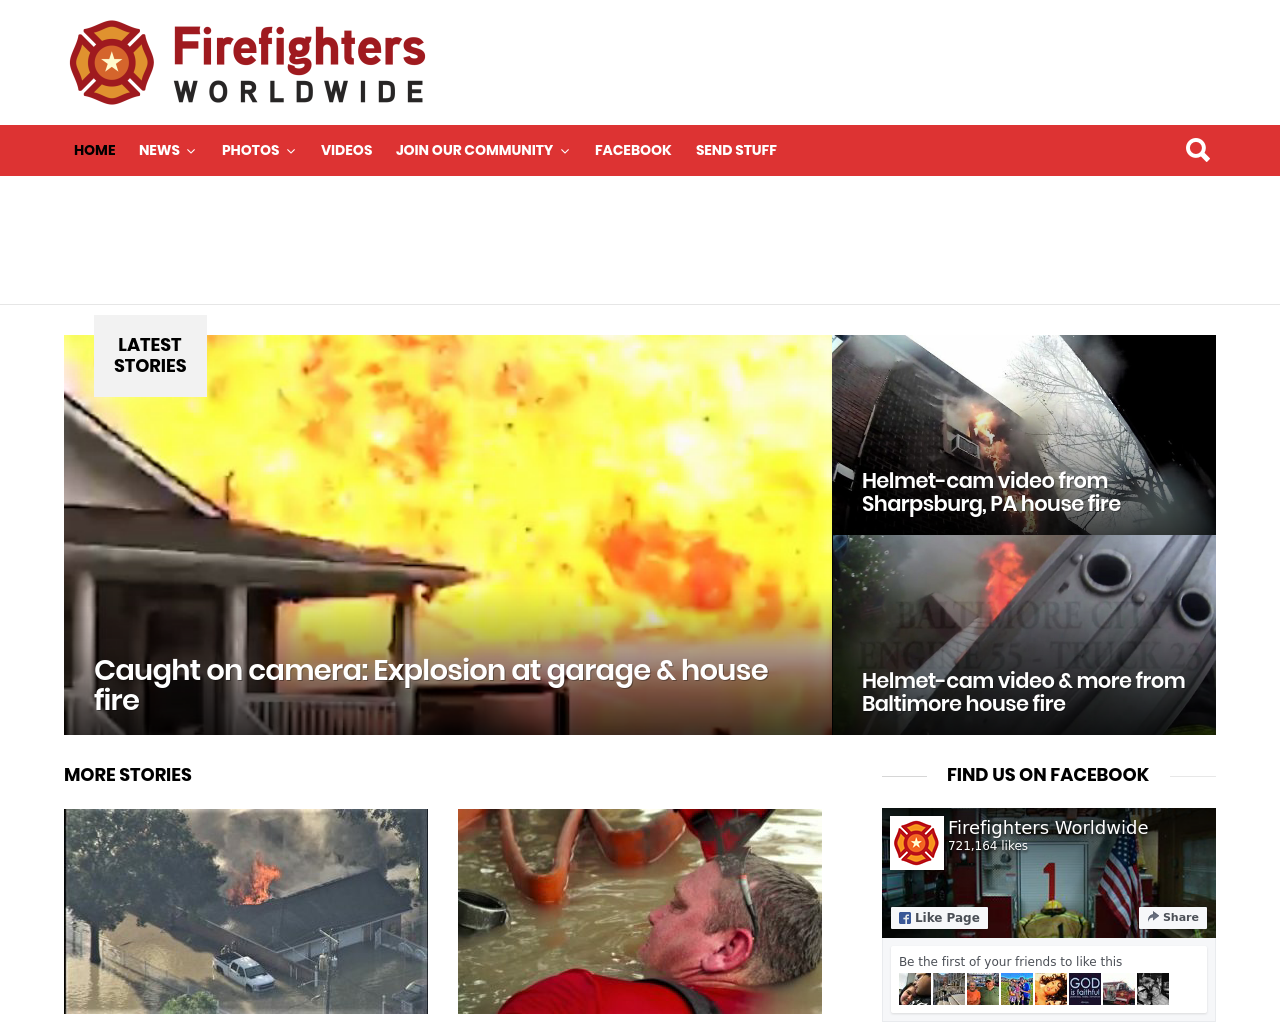 Firefighters-Worldwide-Advertising-Reviews-Pricing